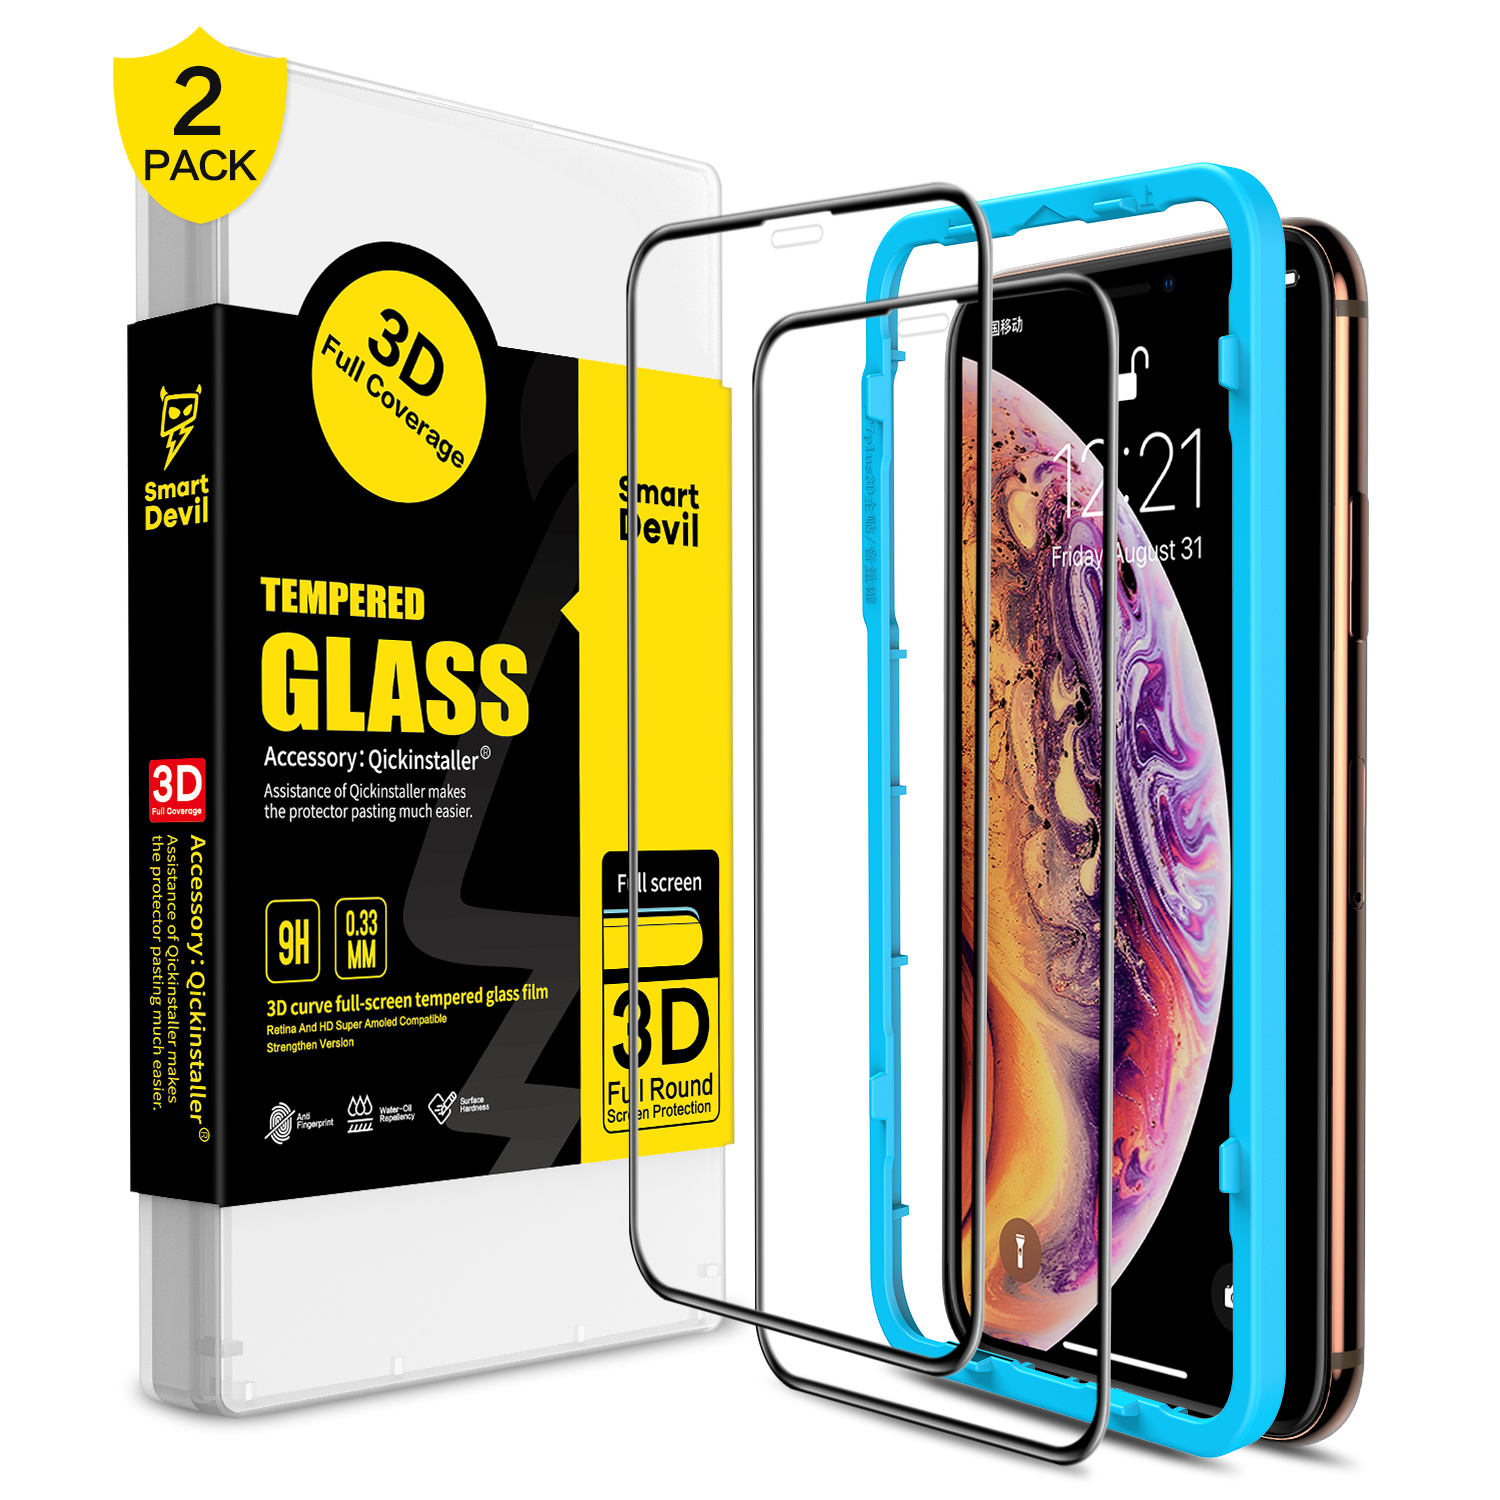 Smart devil 3D Full Cover Tempered Glass Screen Protector For iPhone X XS xr 11 PRO 3D curved Tempered Glass for mobile phone